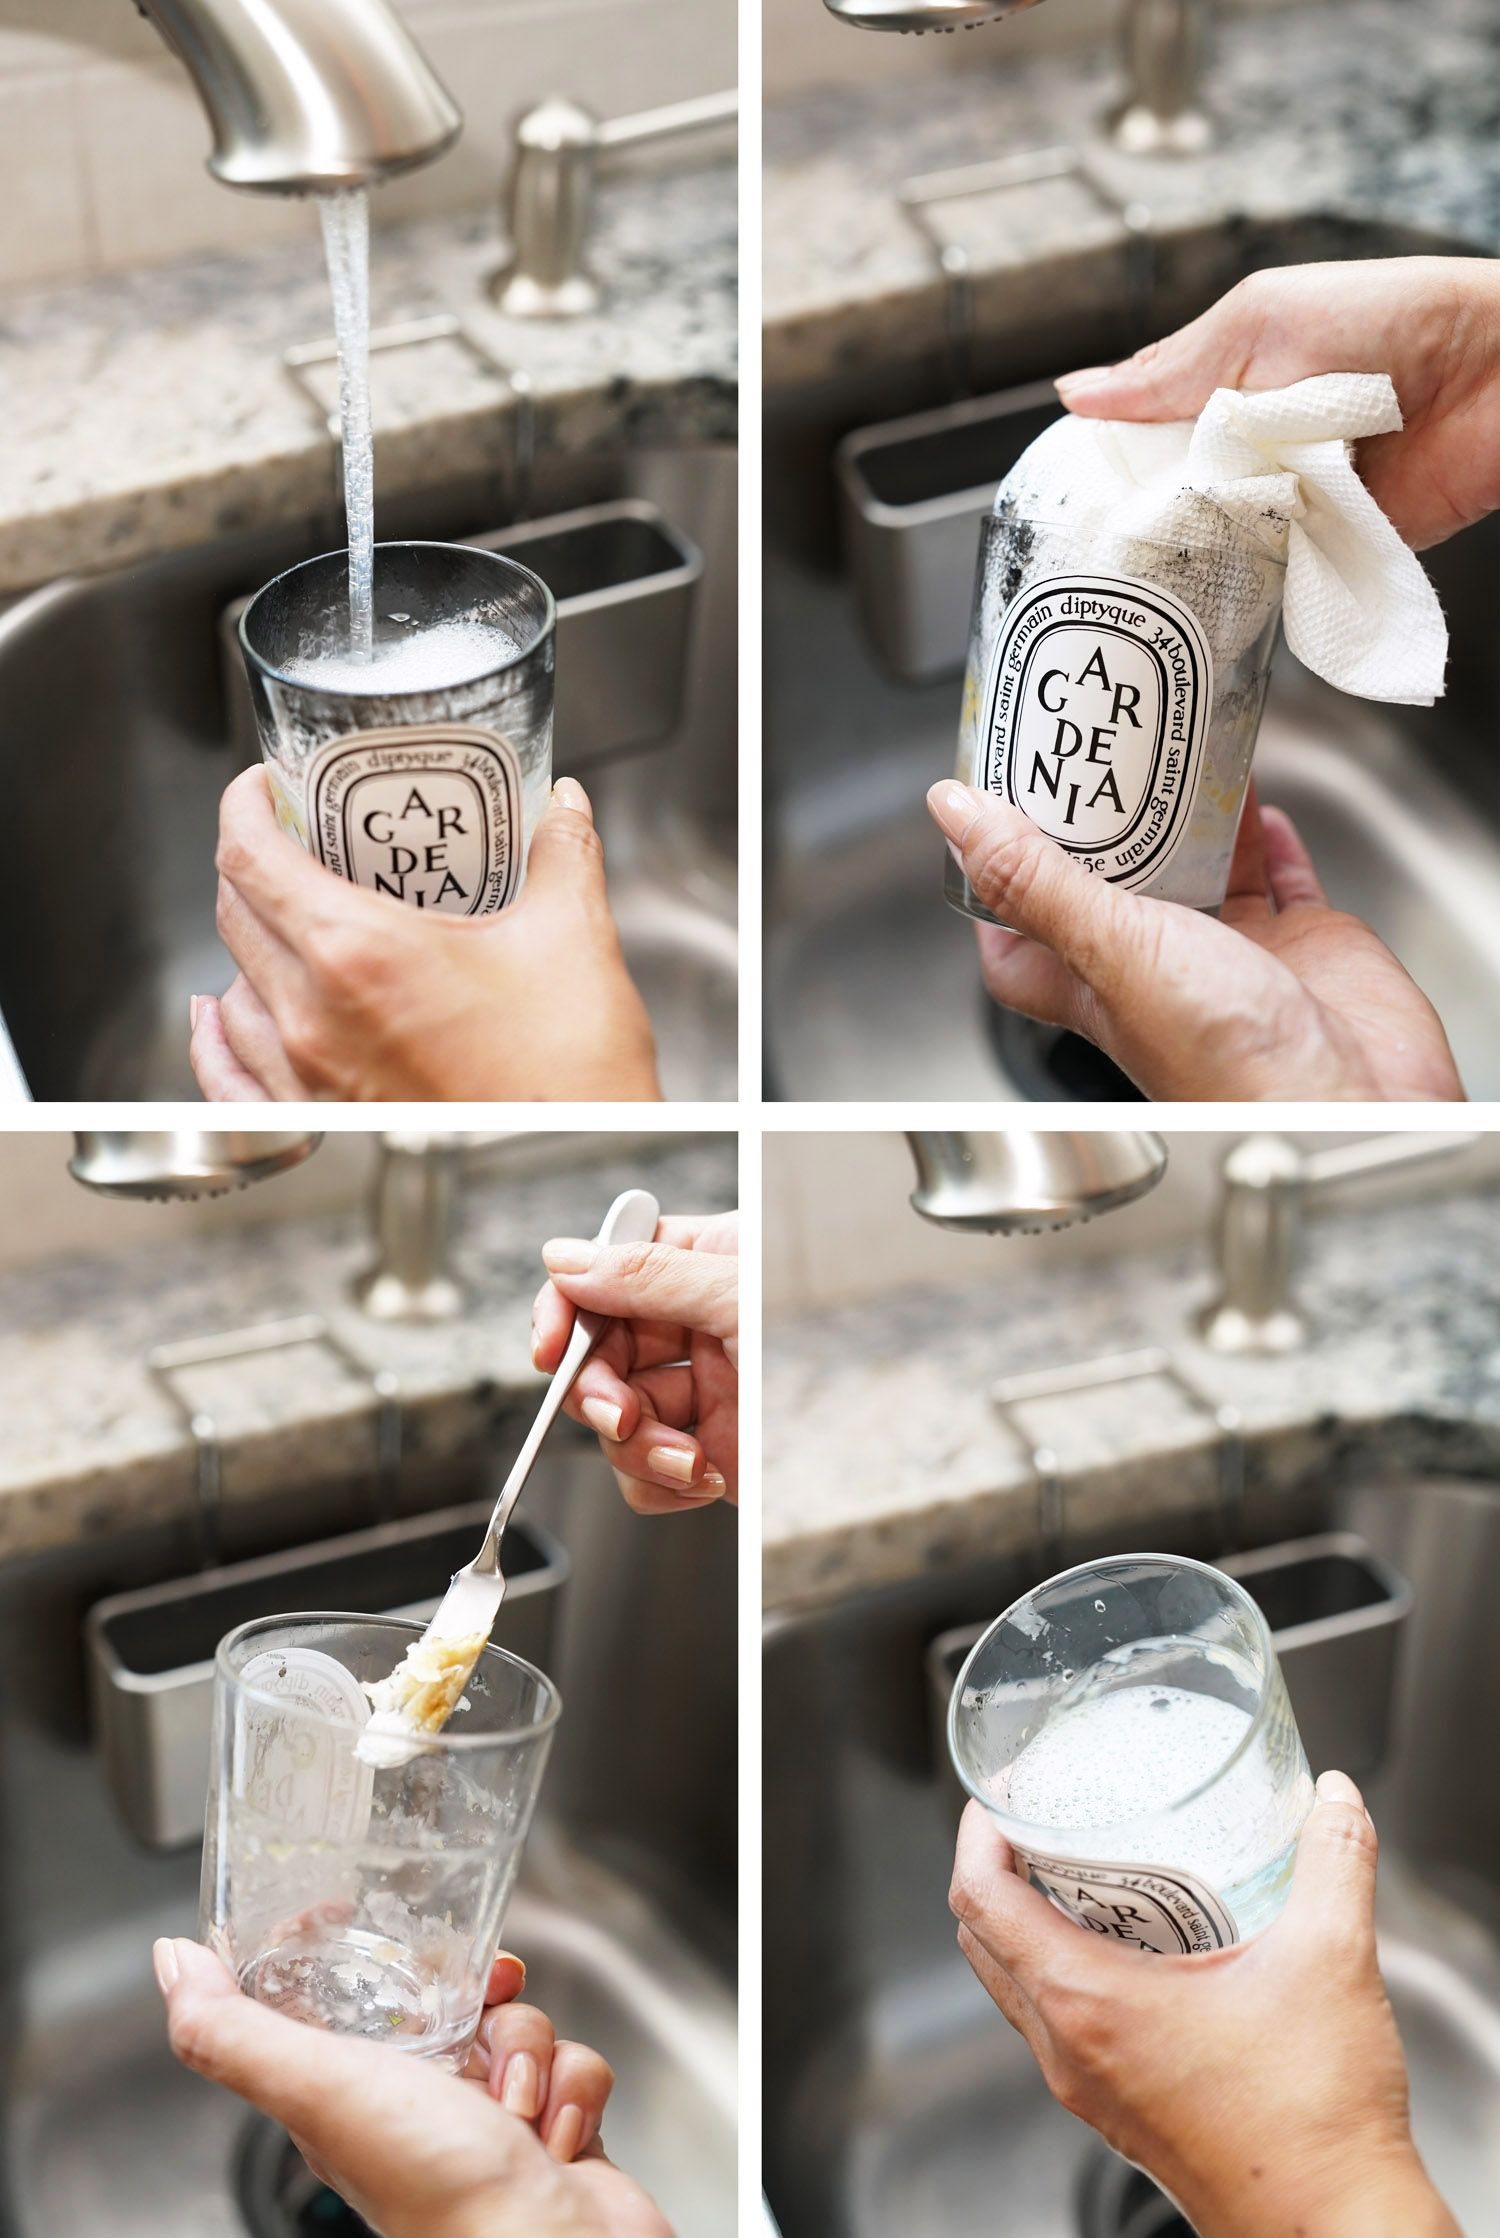 Another favorite brand of mine is Diptyque their candles